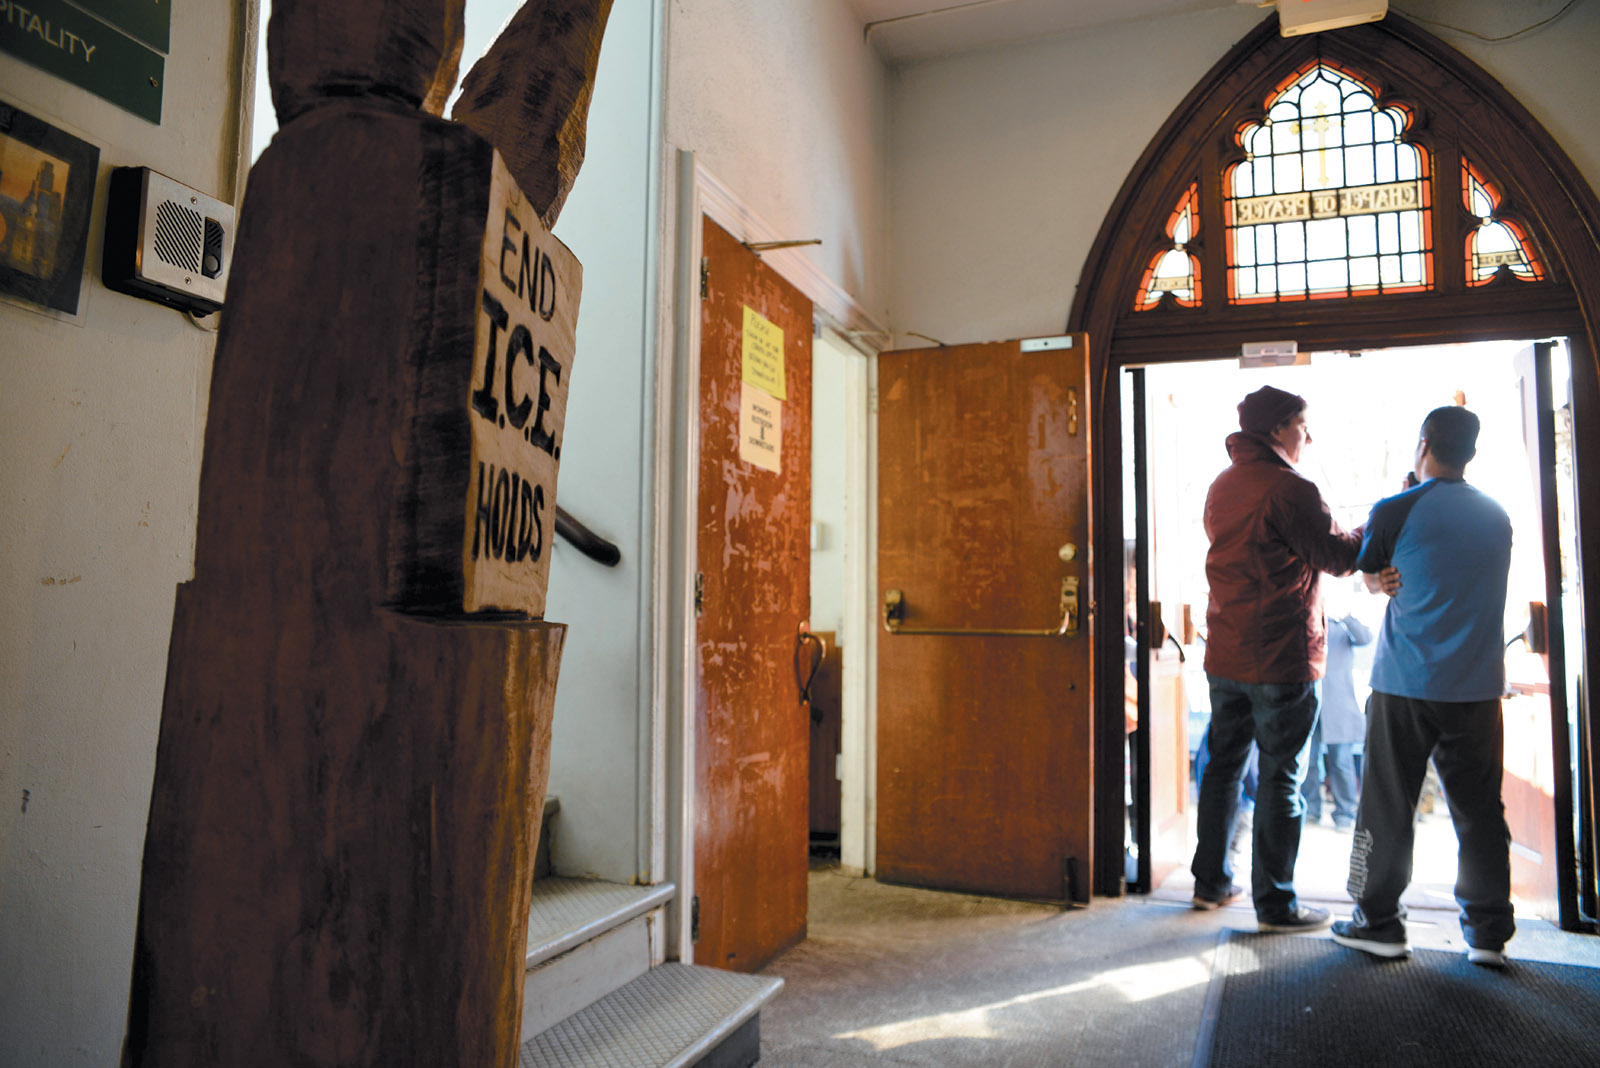 Supporters visiting Javier Flores, an undocumented immigrant from Mexico living in sanctuary at Arch Street United Methodist Church, Philadelphia